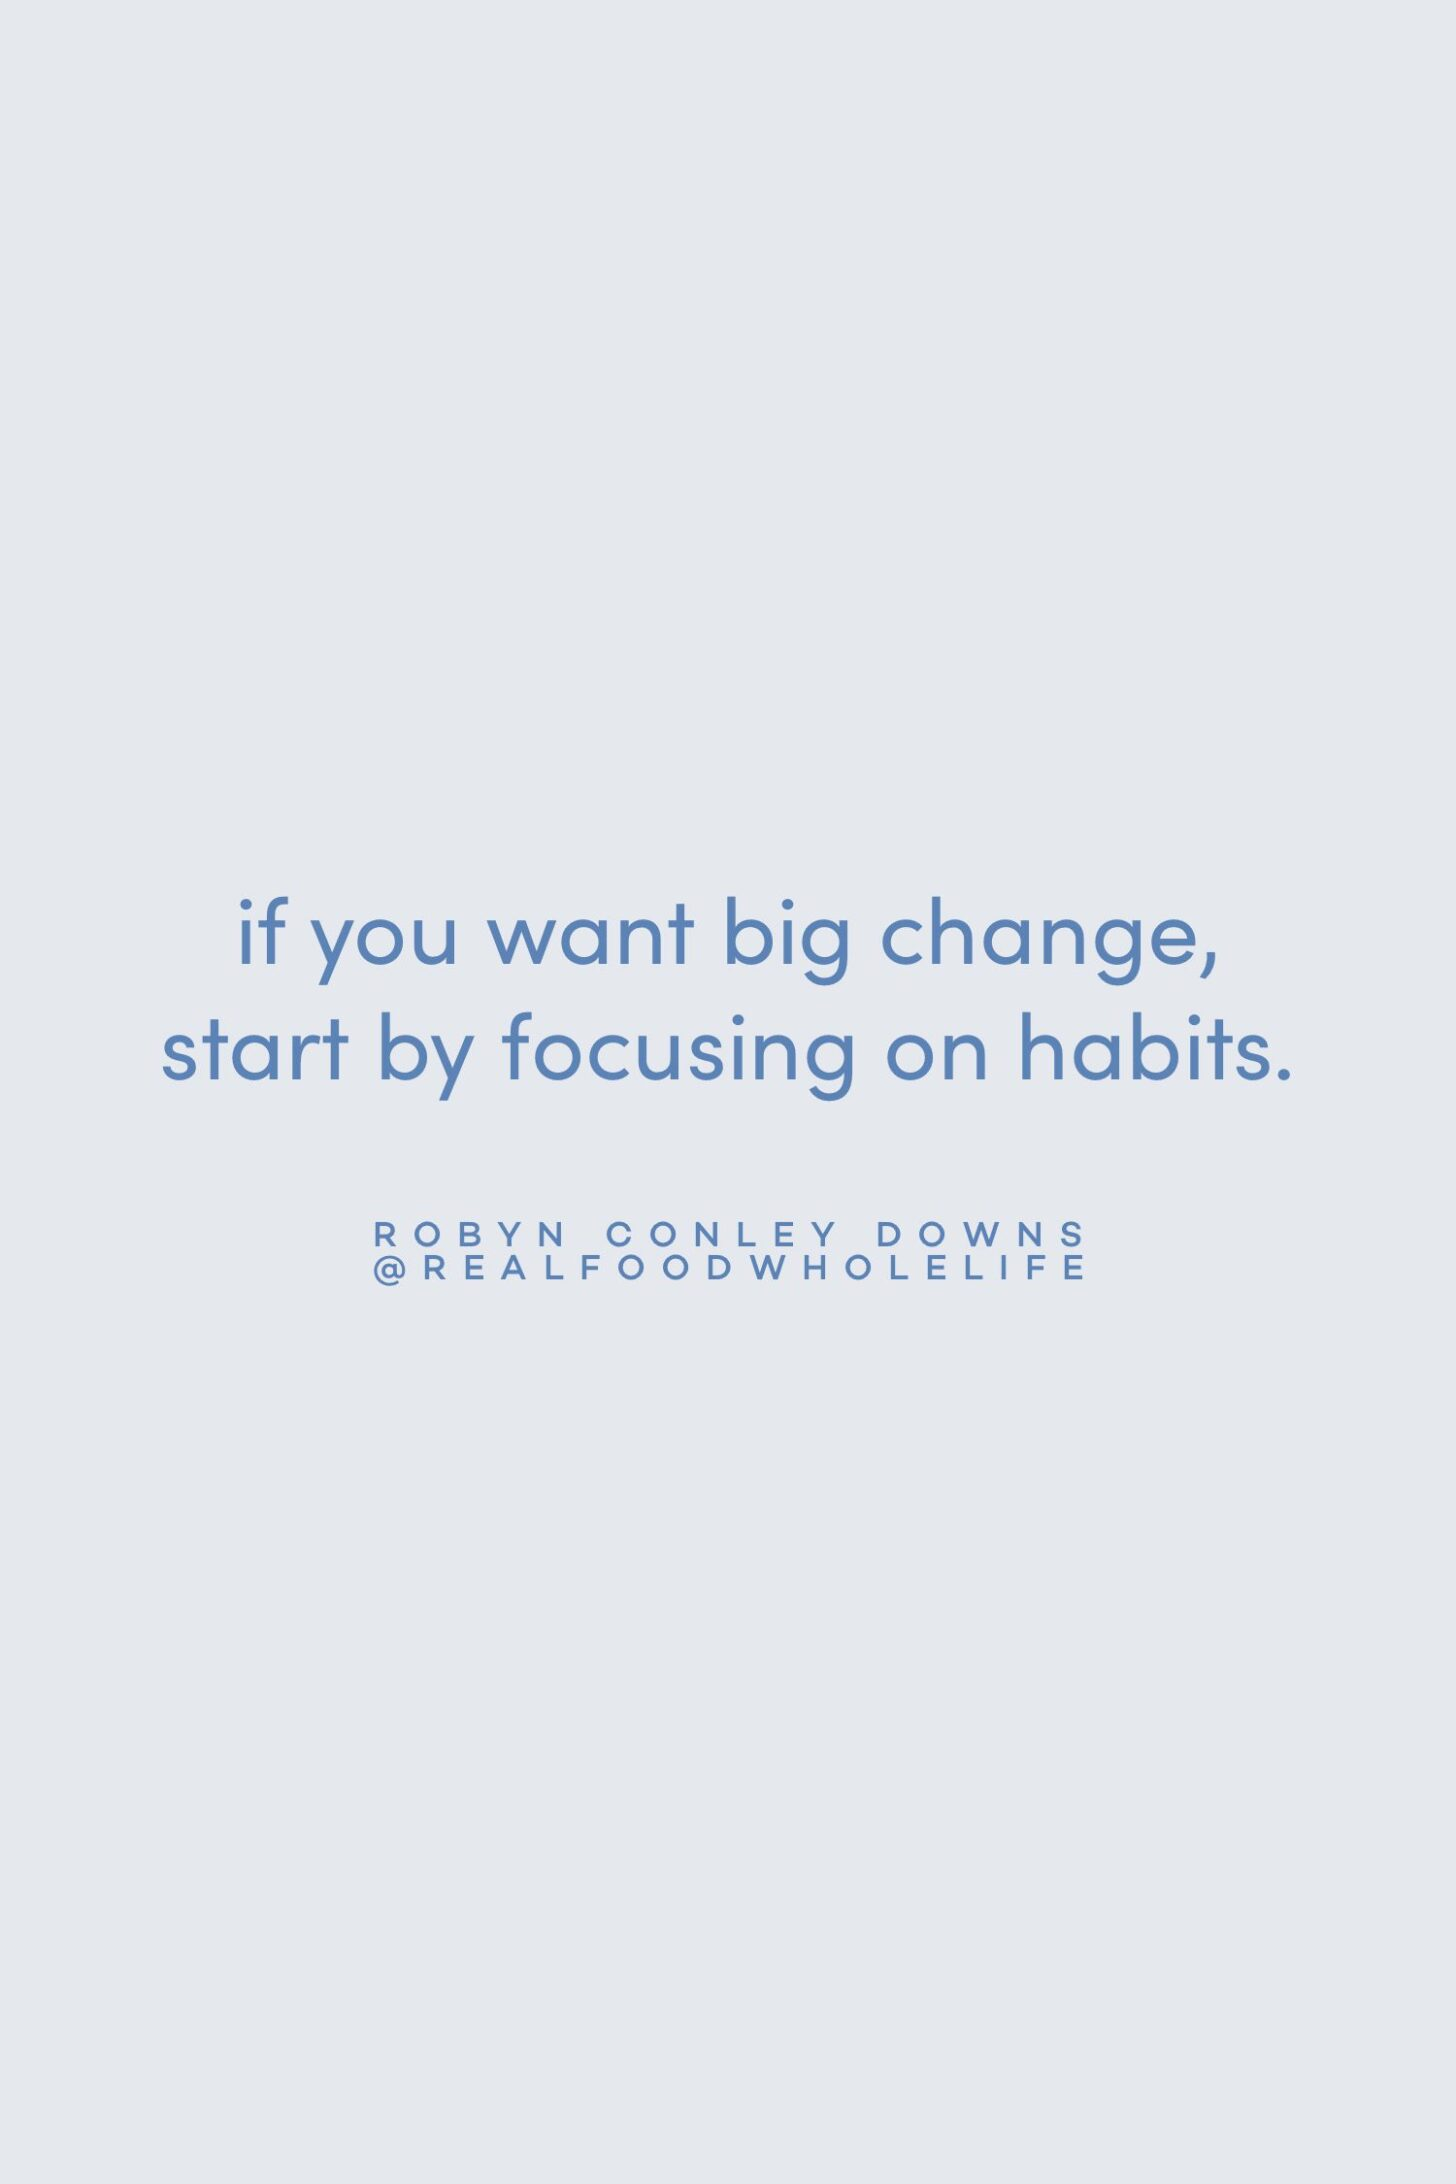 Quote on focusing on habits by Robyn Conley Downs on the Feel Good Effect Podcast #realfoodwholelife #feelgoodeffectpodcast #motivationalquote #positivityquote #inspirationalquote #habitsquote #behaviorchangequote